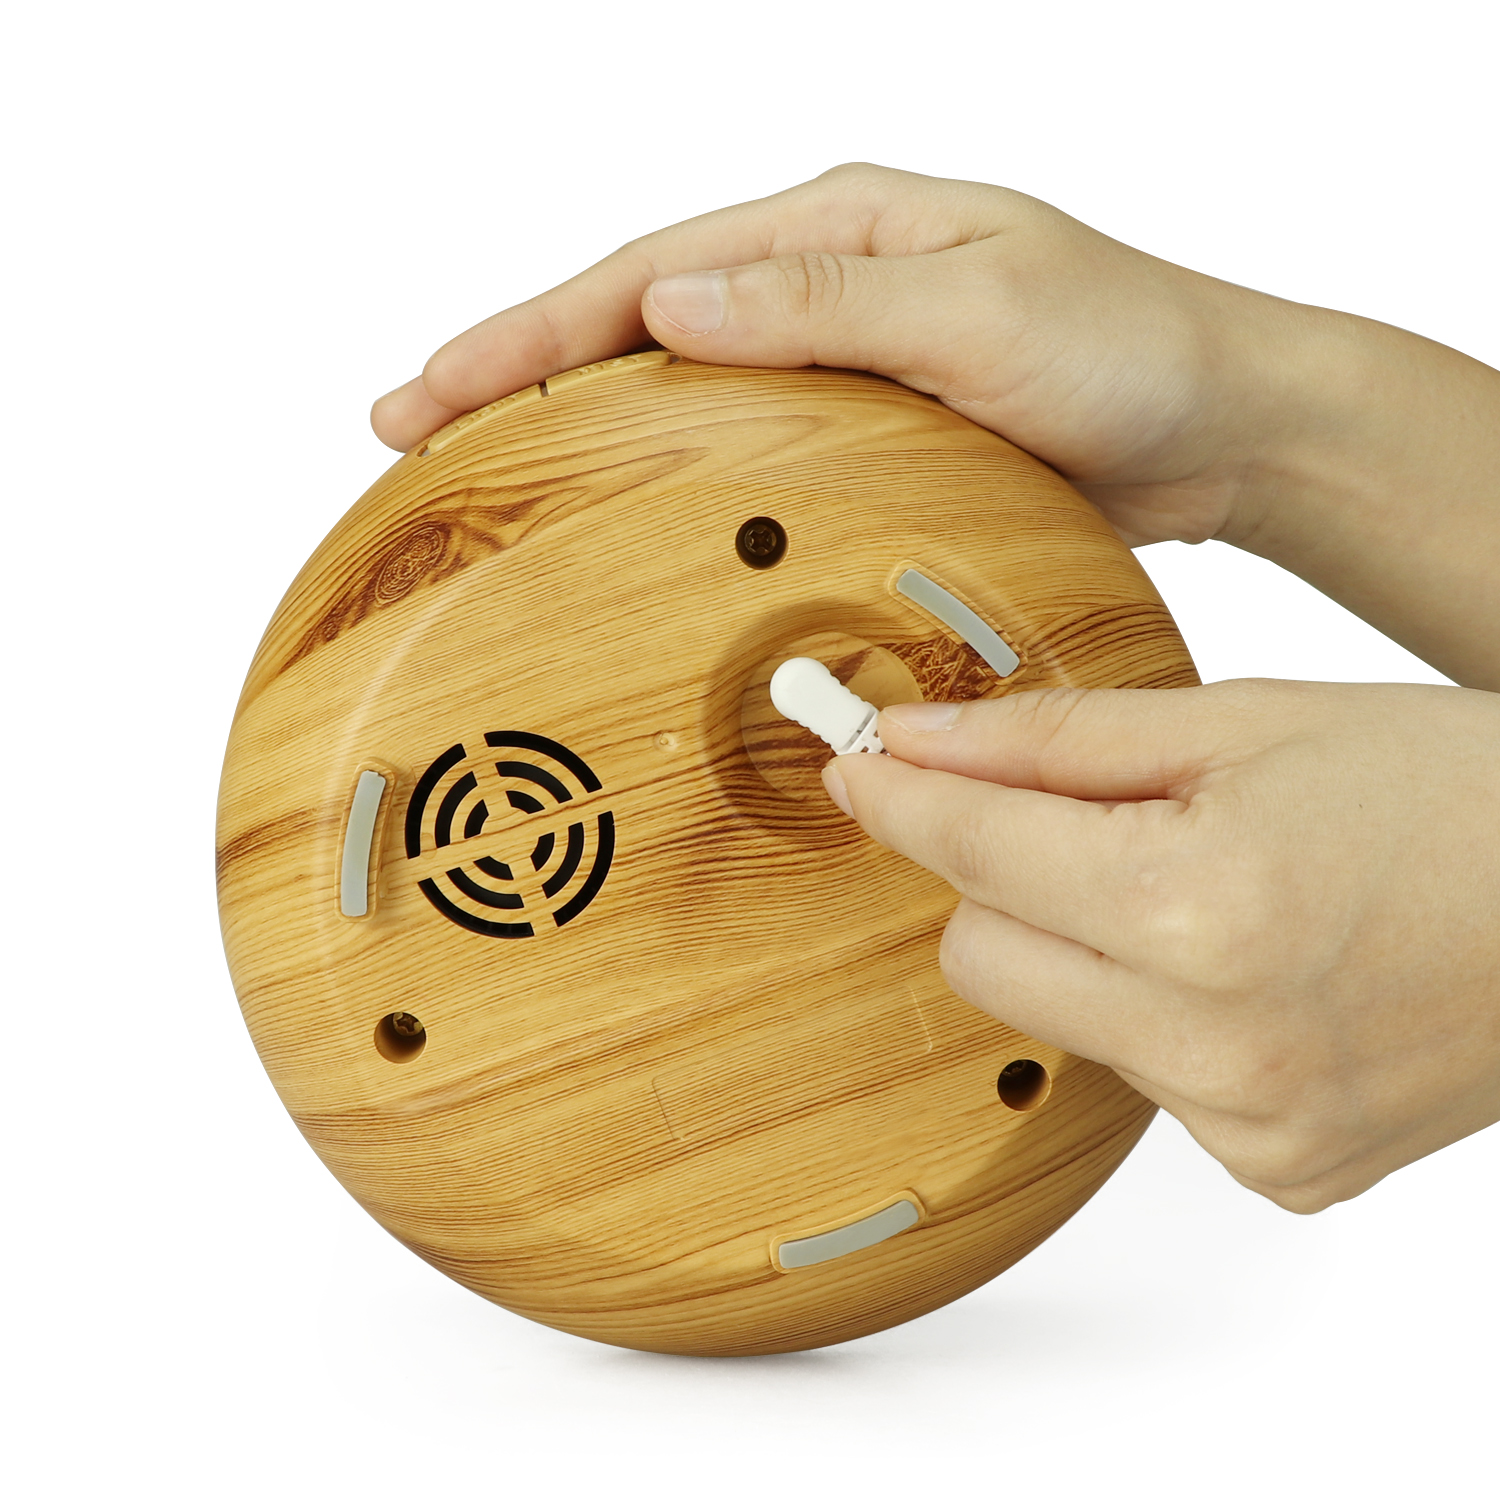 Hollow aromatherapy diffuser